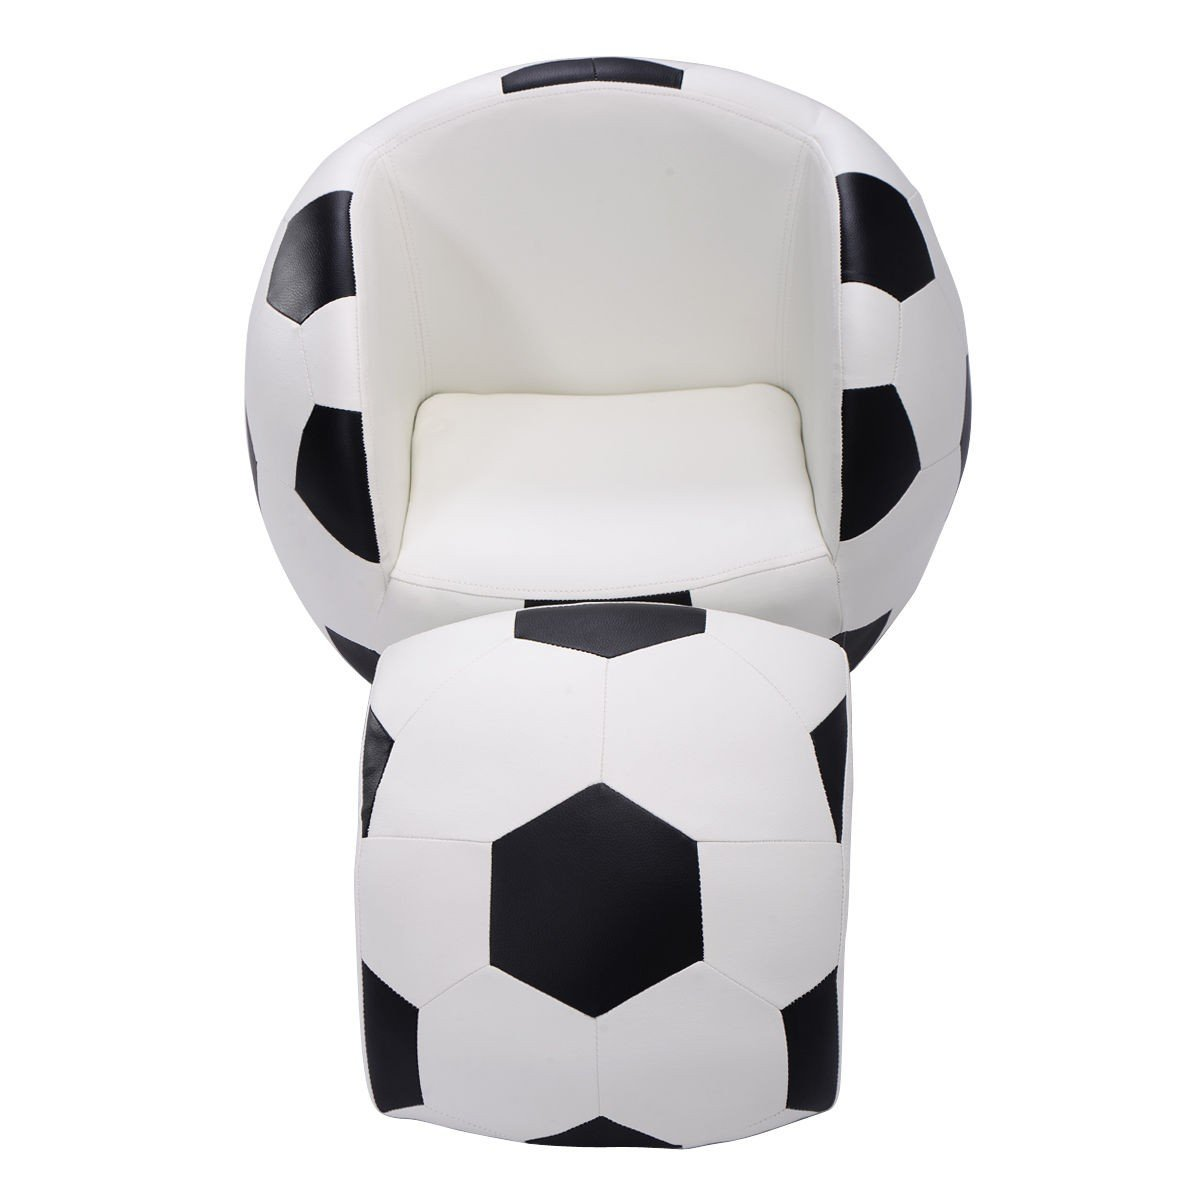 Svitlife Football Shaped Kids Sofa Couch with Ottoman Shape Children Toddler W Birthday Gift